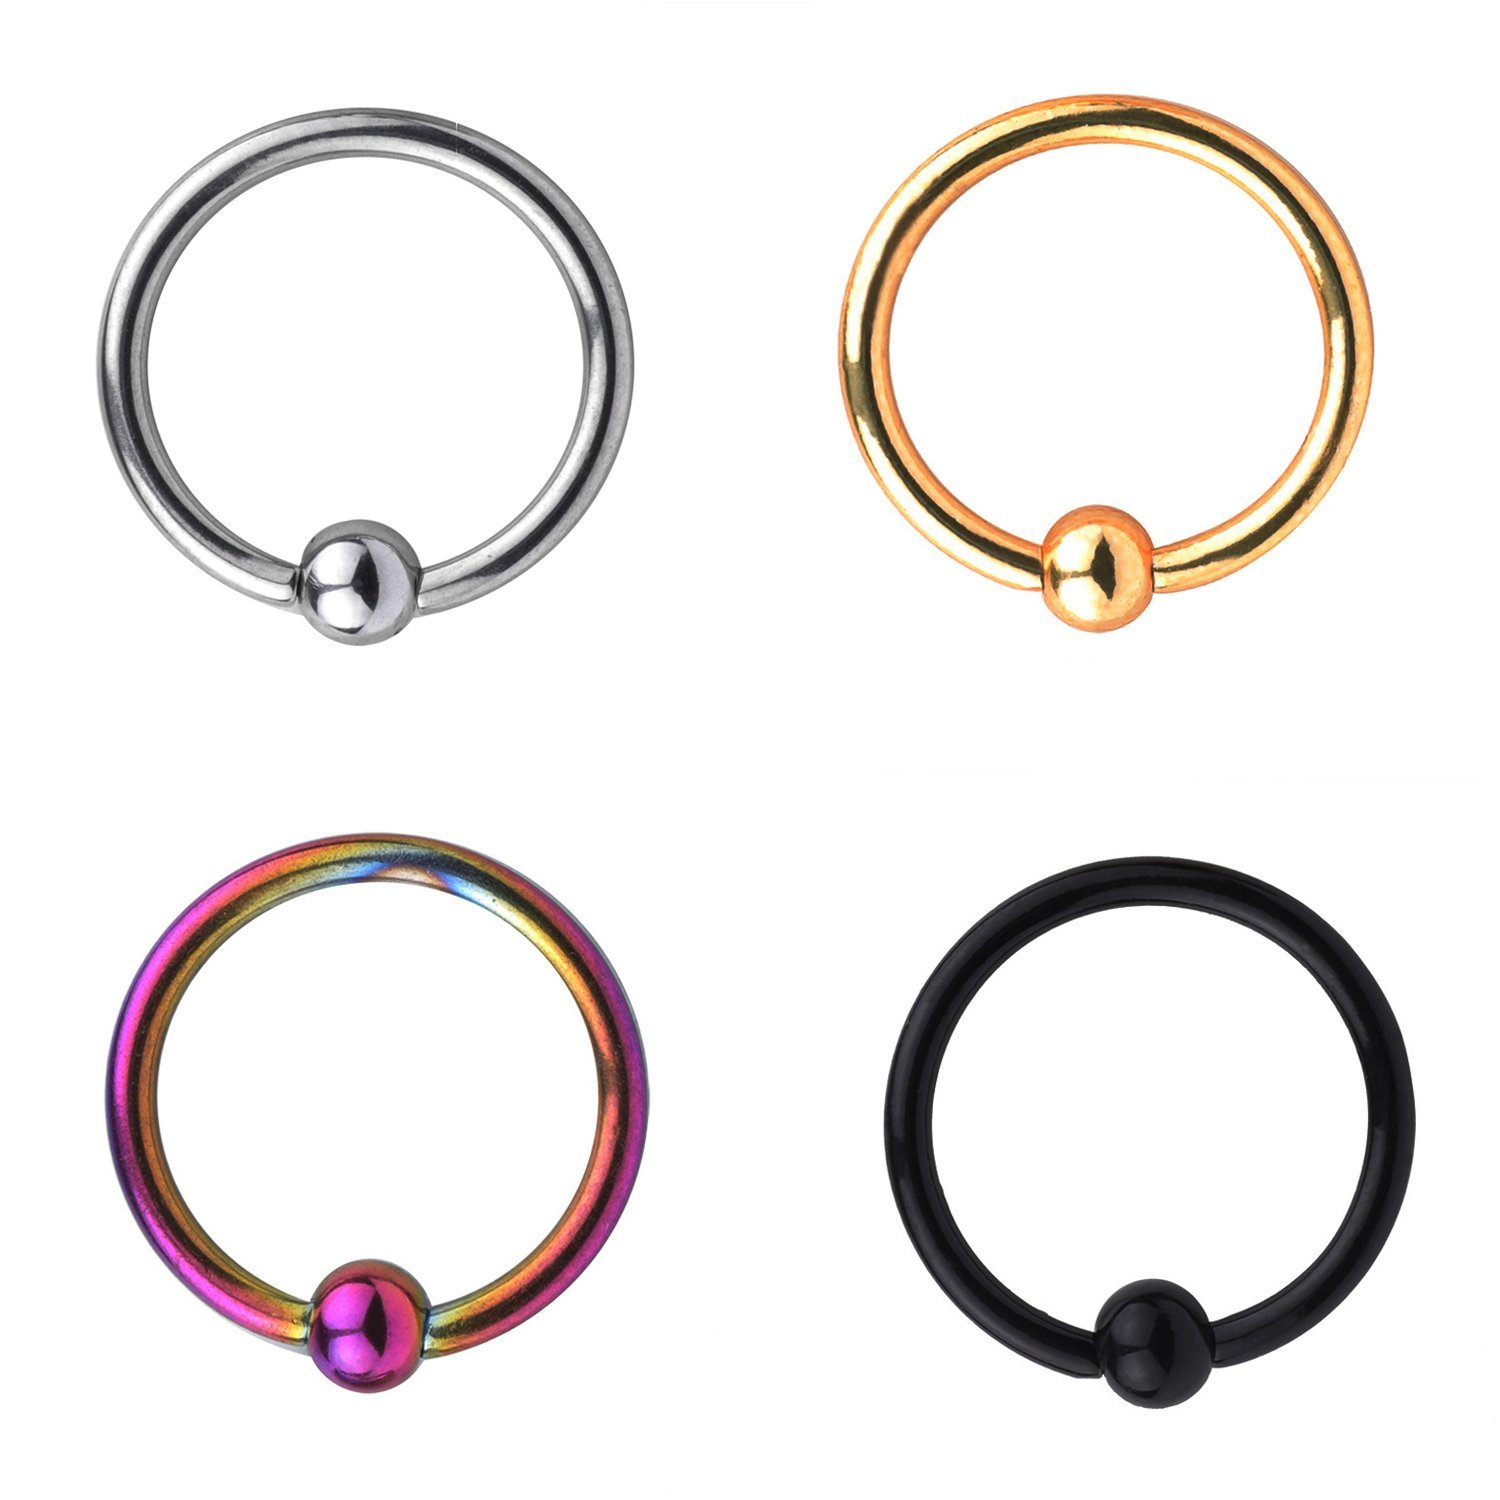 16G Stainless Steel Nose Hoop Lip Eyebrow Tongue Helix Tragus Cartilage Septum Piercing Ring 10mm